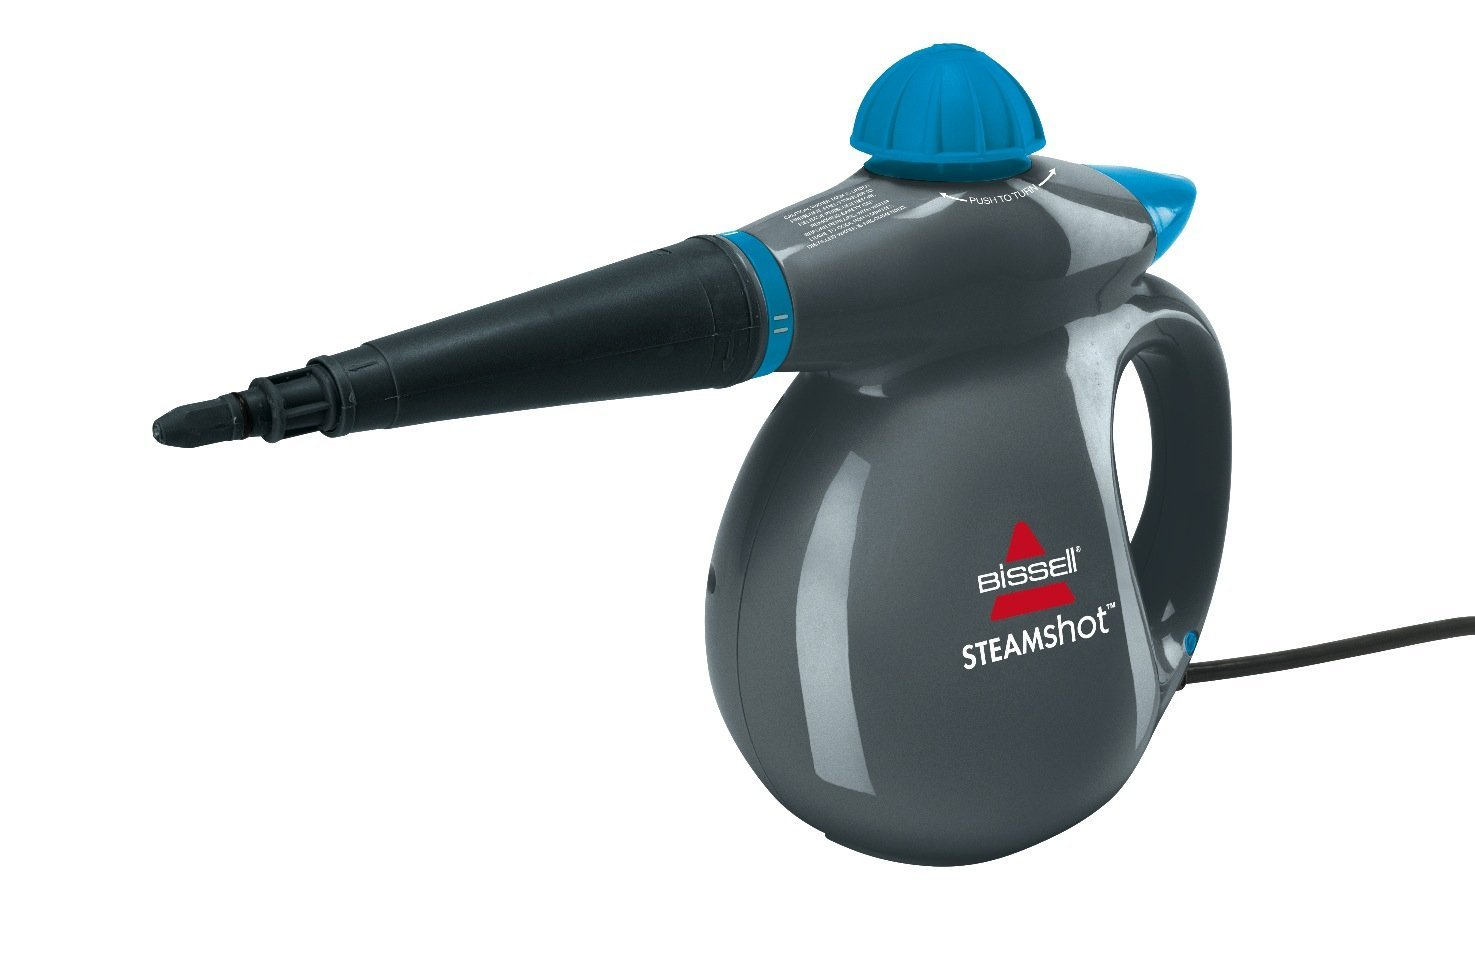 Power Steamers For Cleaning ~ Bissell q steam shot w power handheld cleaner